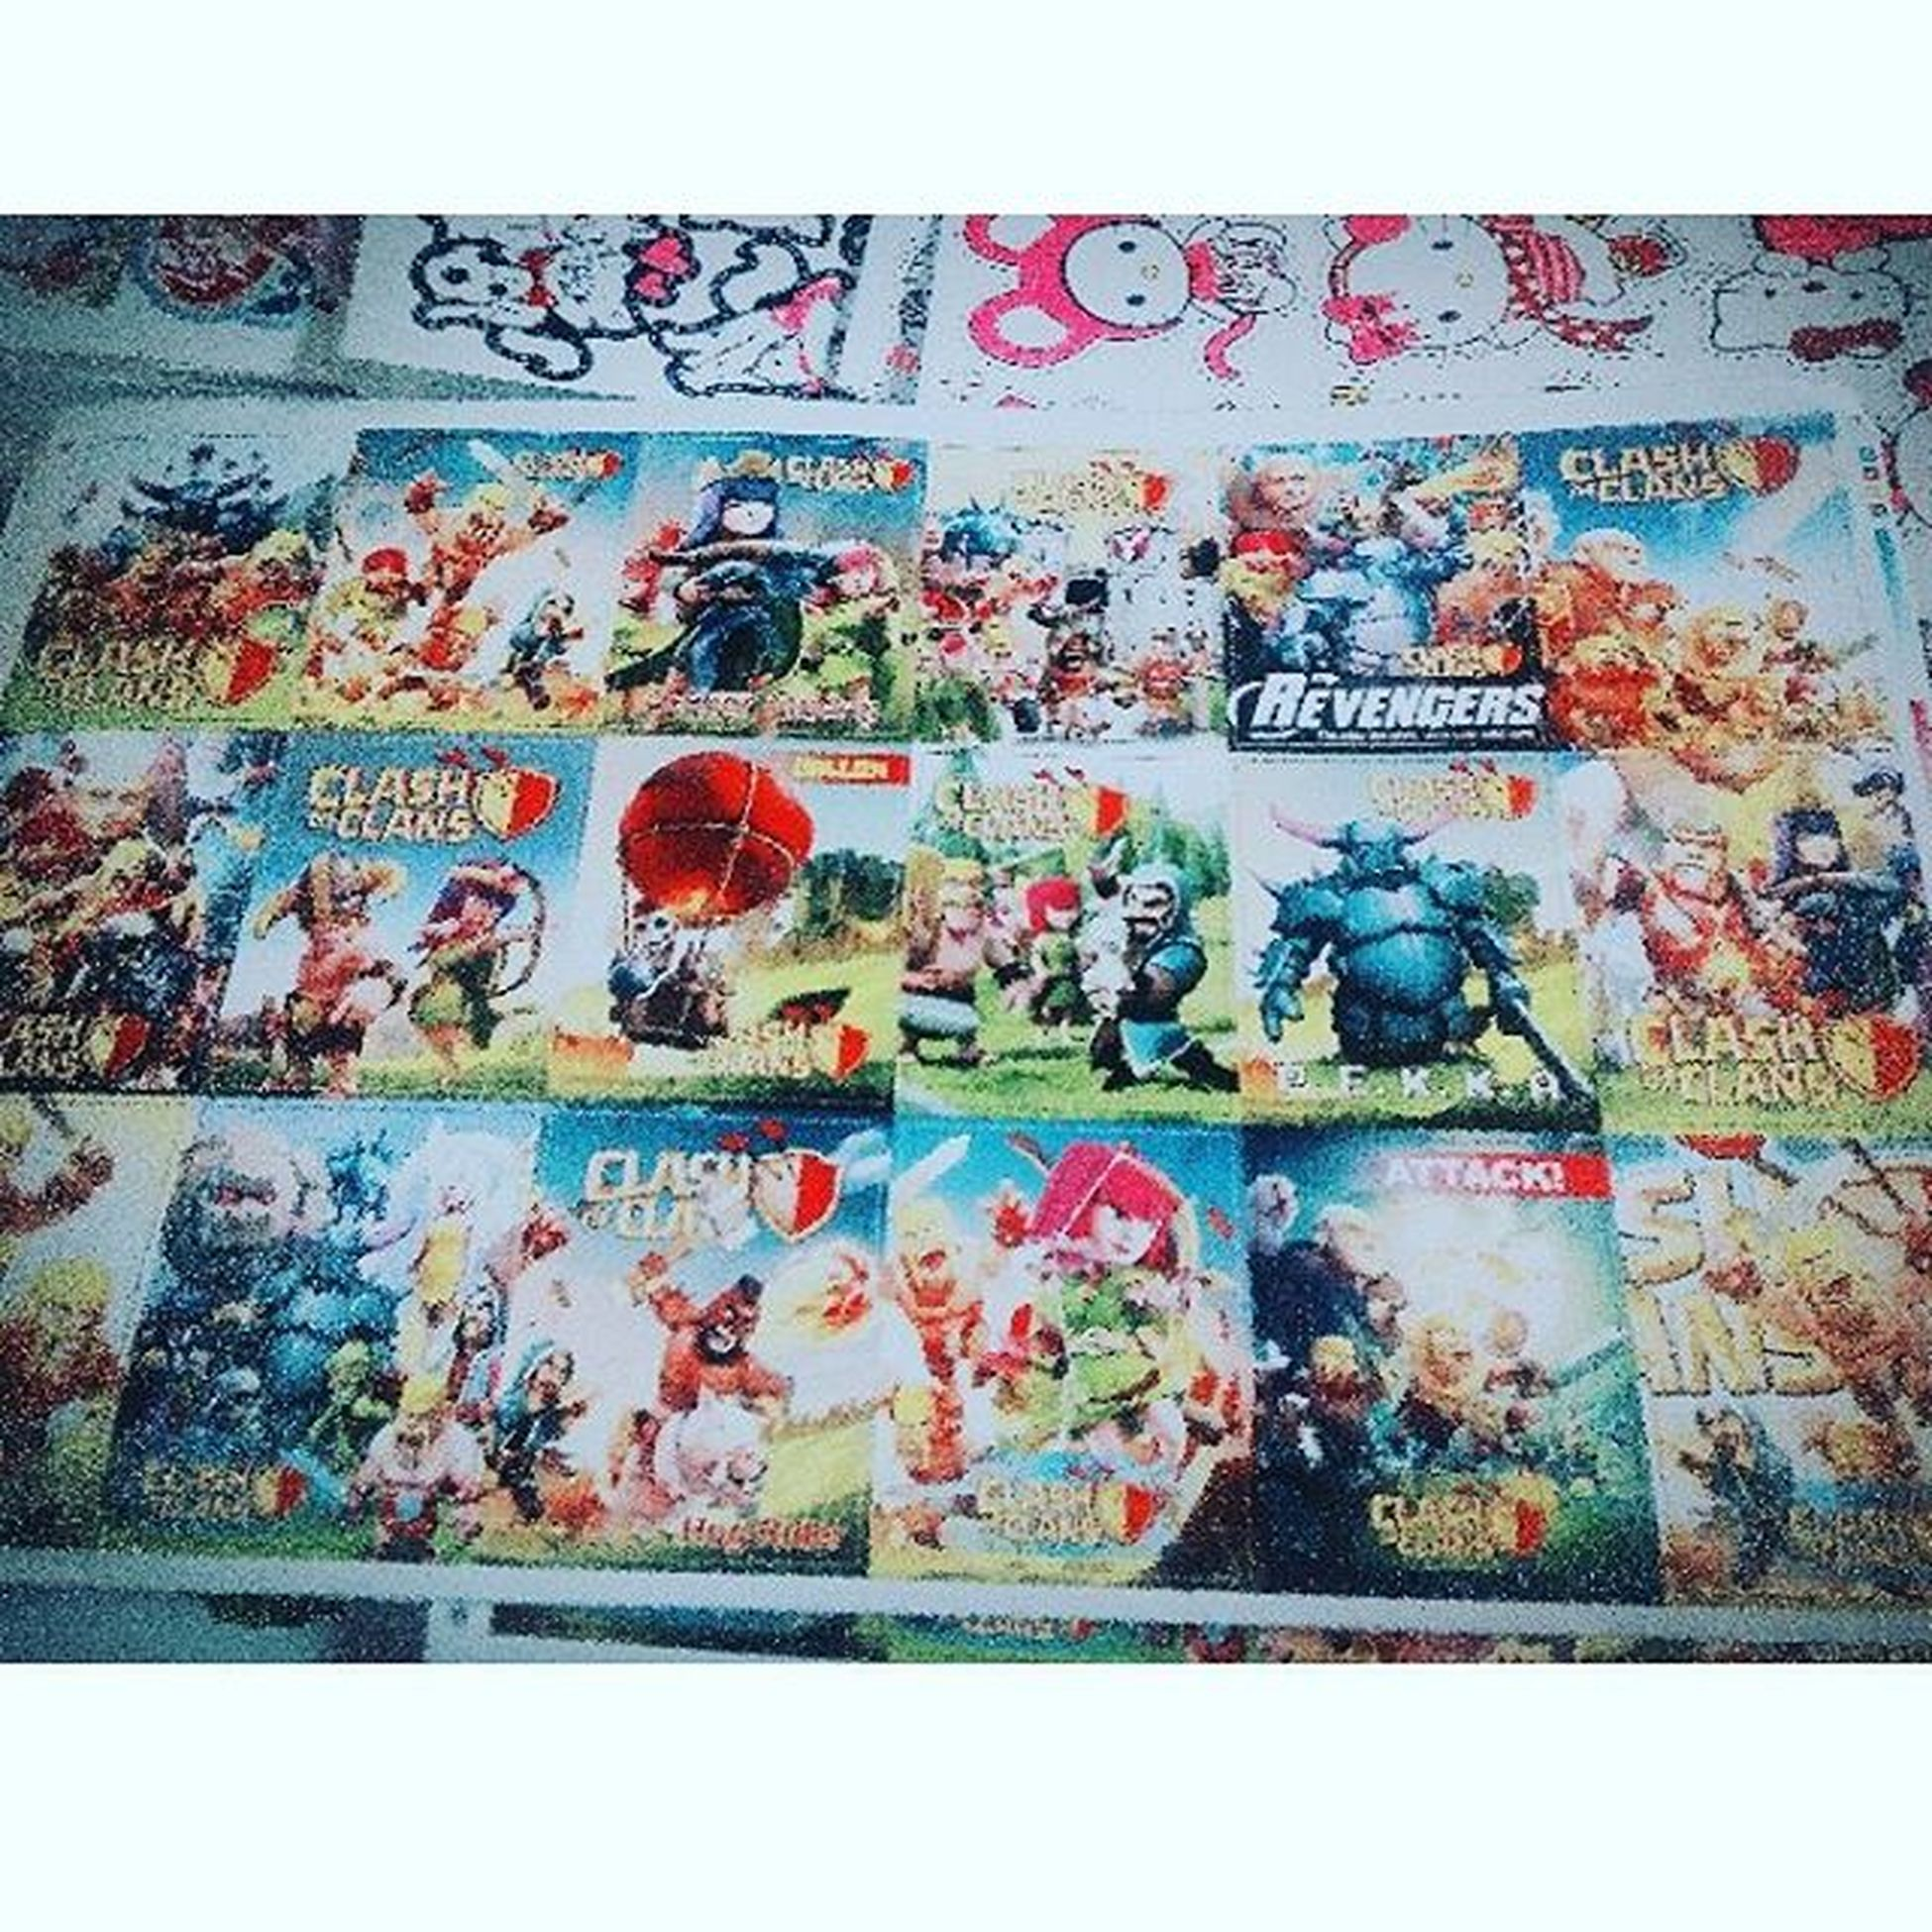 for sale Sticker COC for all who love Clash of Clans Sticker CoC Clashofclans Jualstickercoc Jualsticker Murah Cheap Clashofclansindonesia Gamecoc Cocindonesia Gameindonesia Jualstickermurah